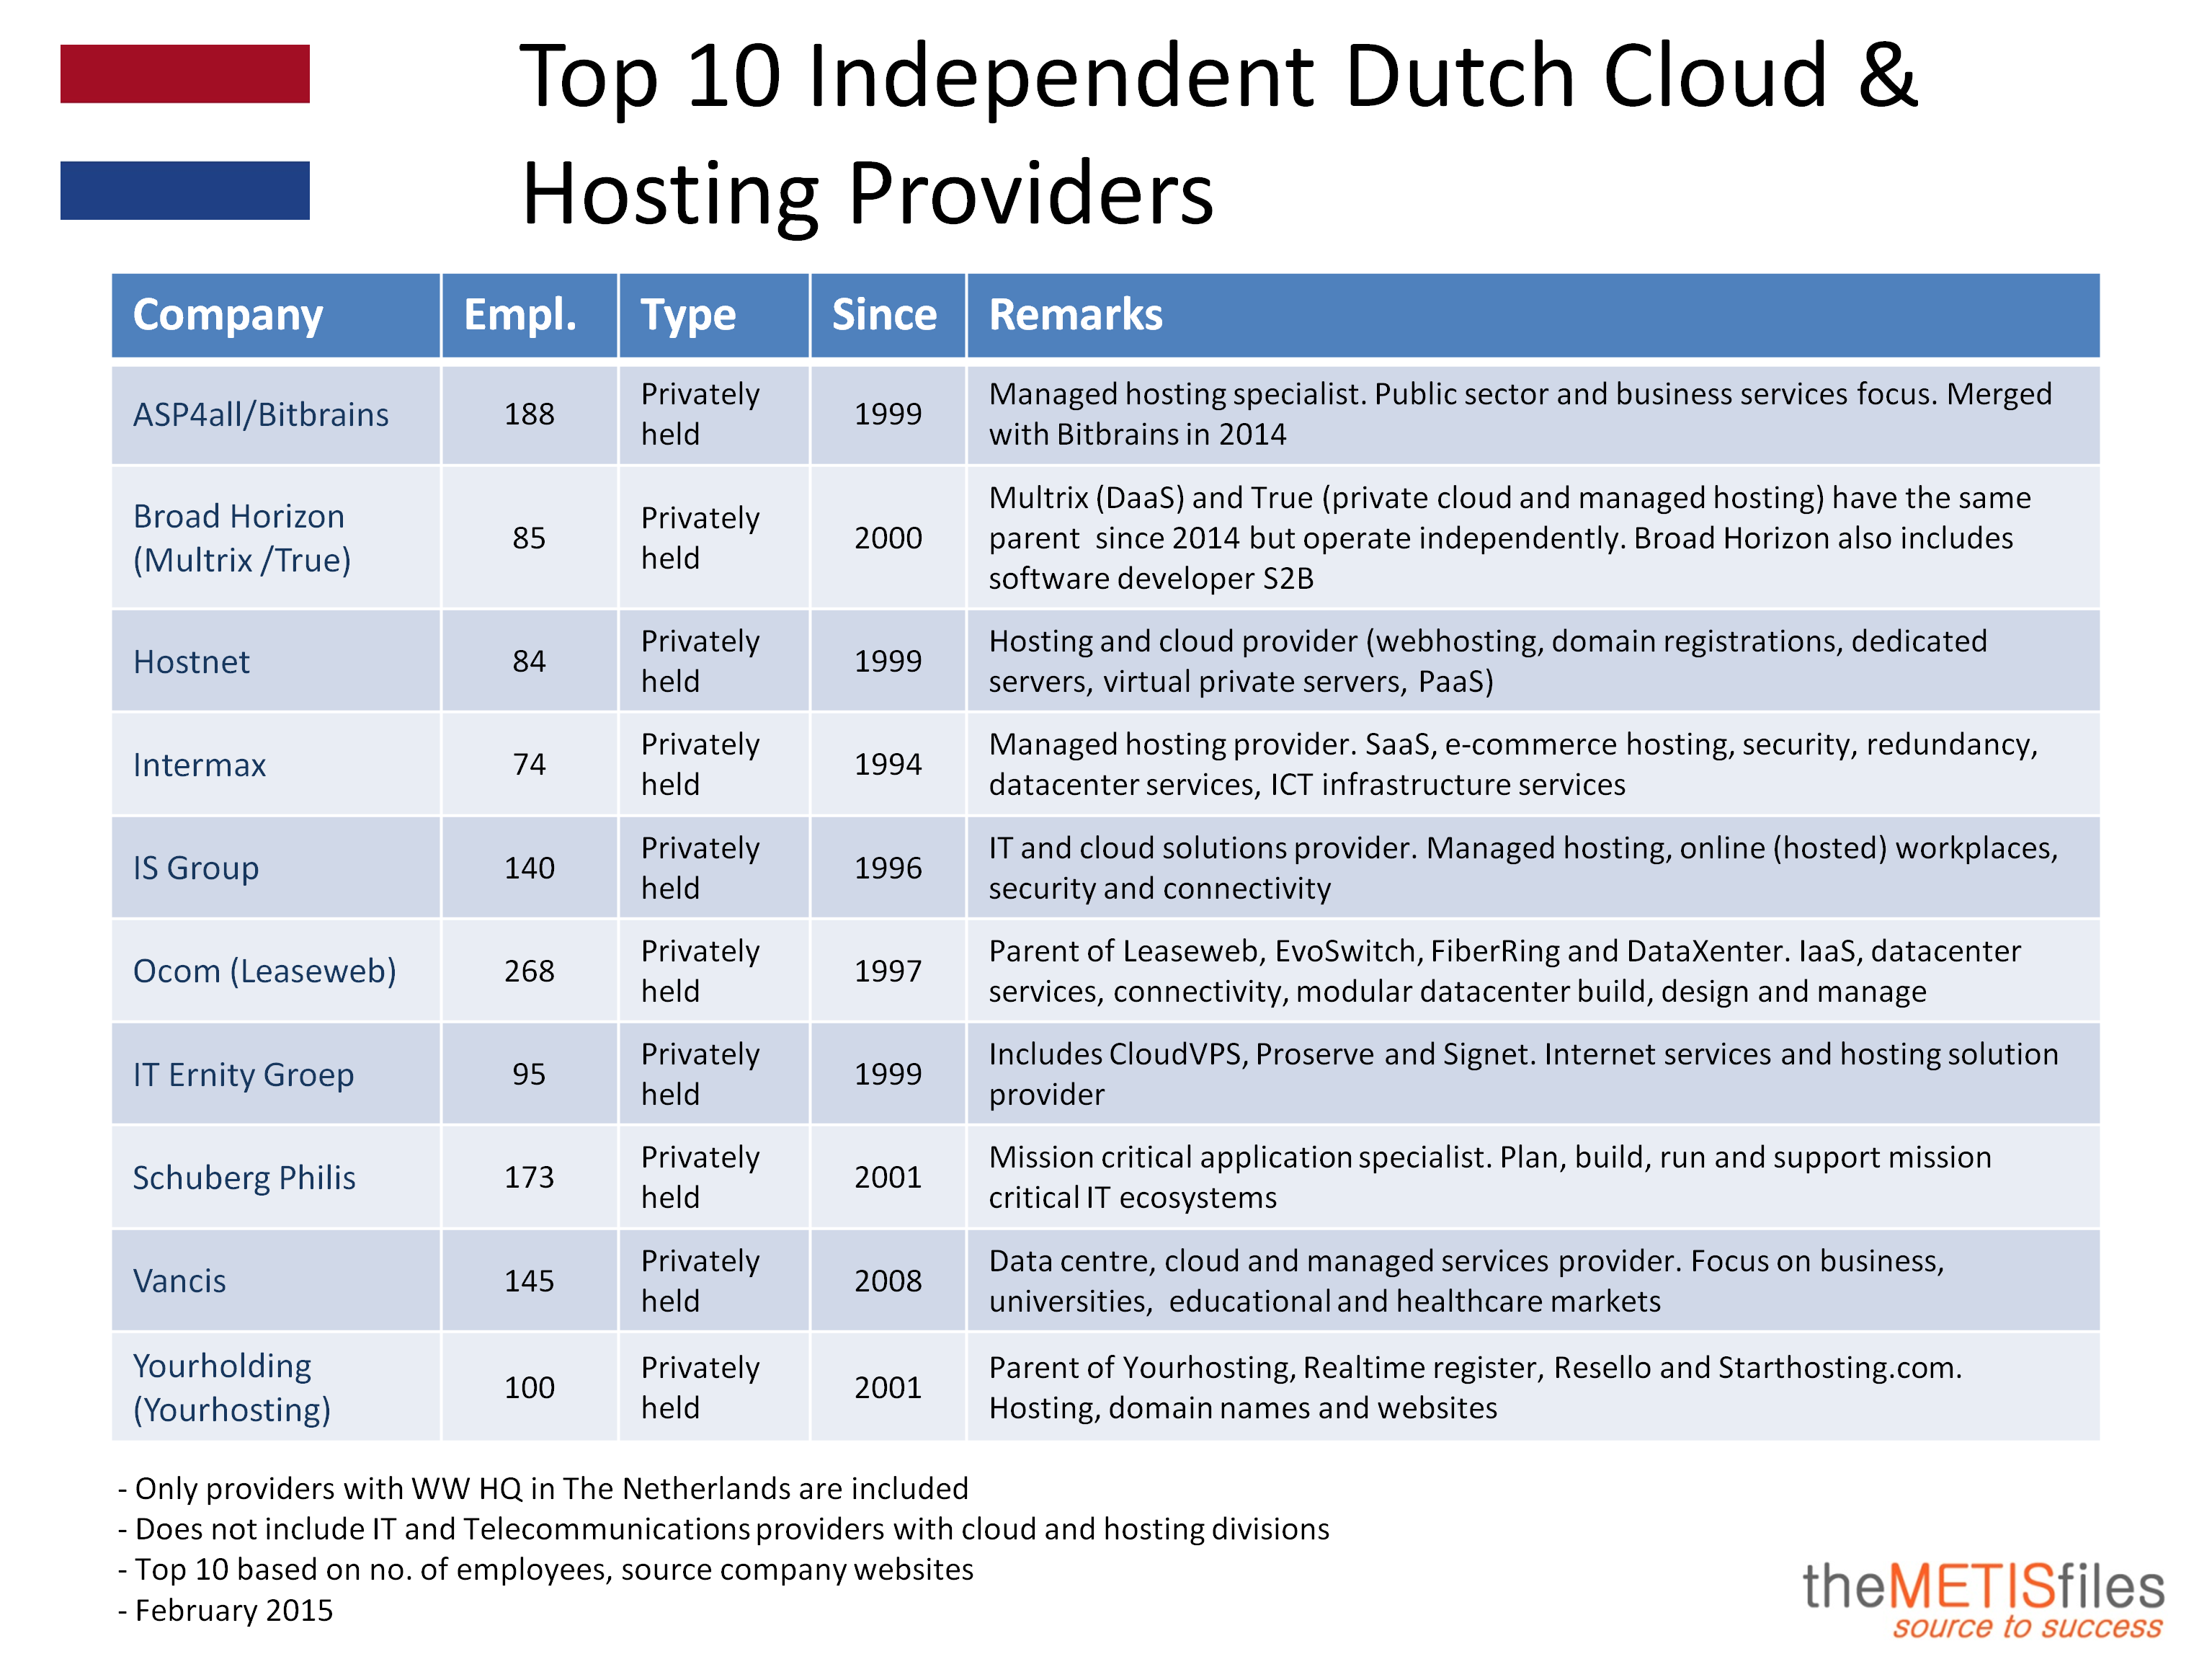 Top 10 Independent Dutch Cloud & Hosting Providers